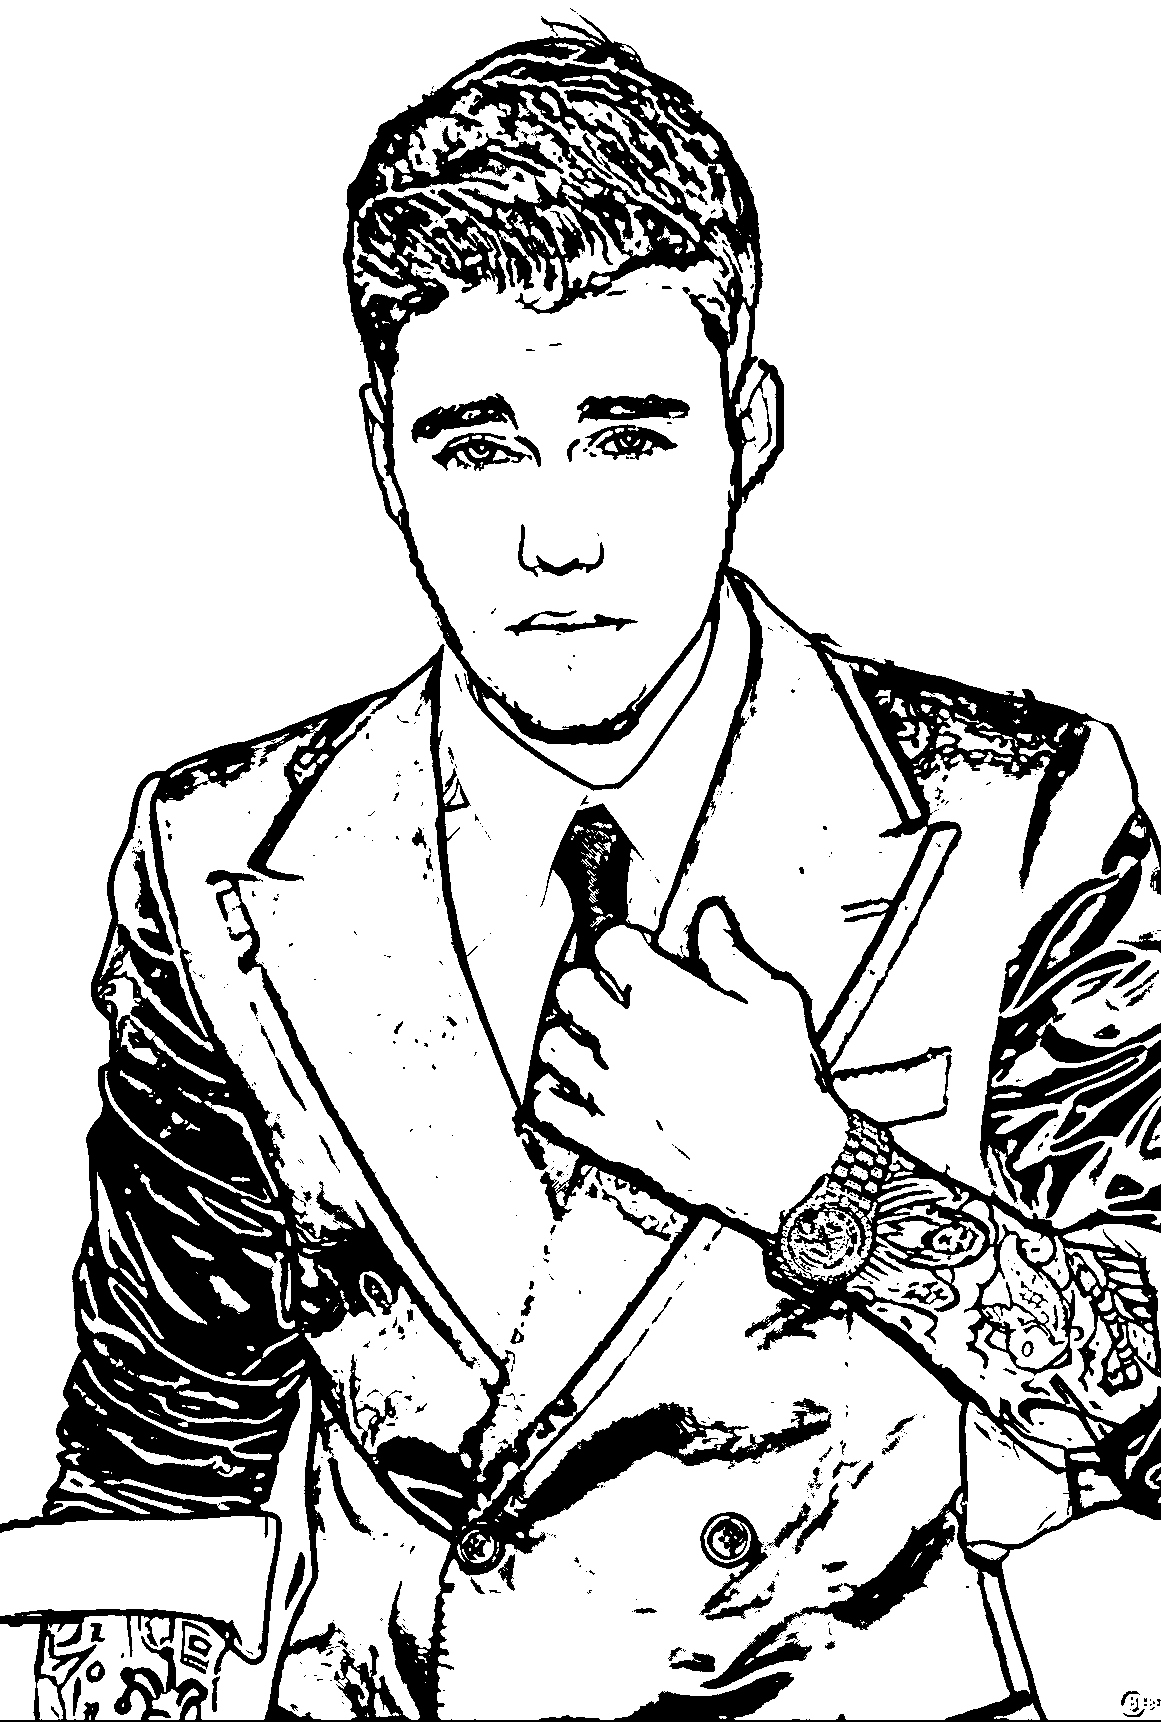 justin bieber coloring page merry christmas justin bieber coloring page netart justin coloring bieber page